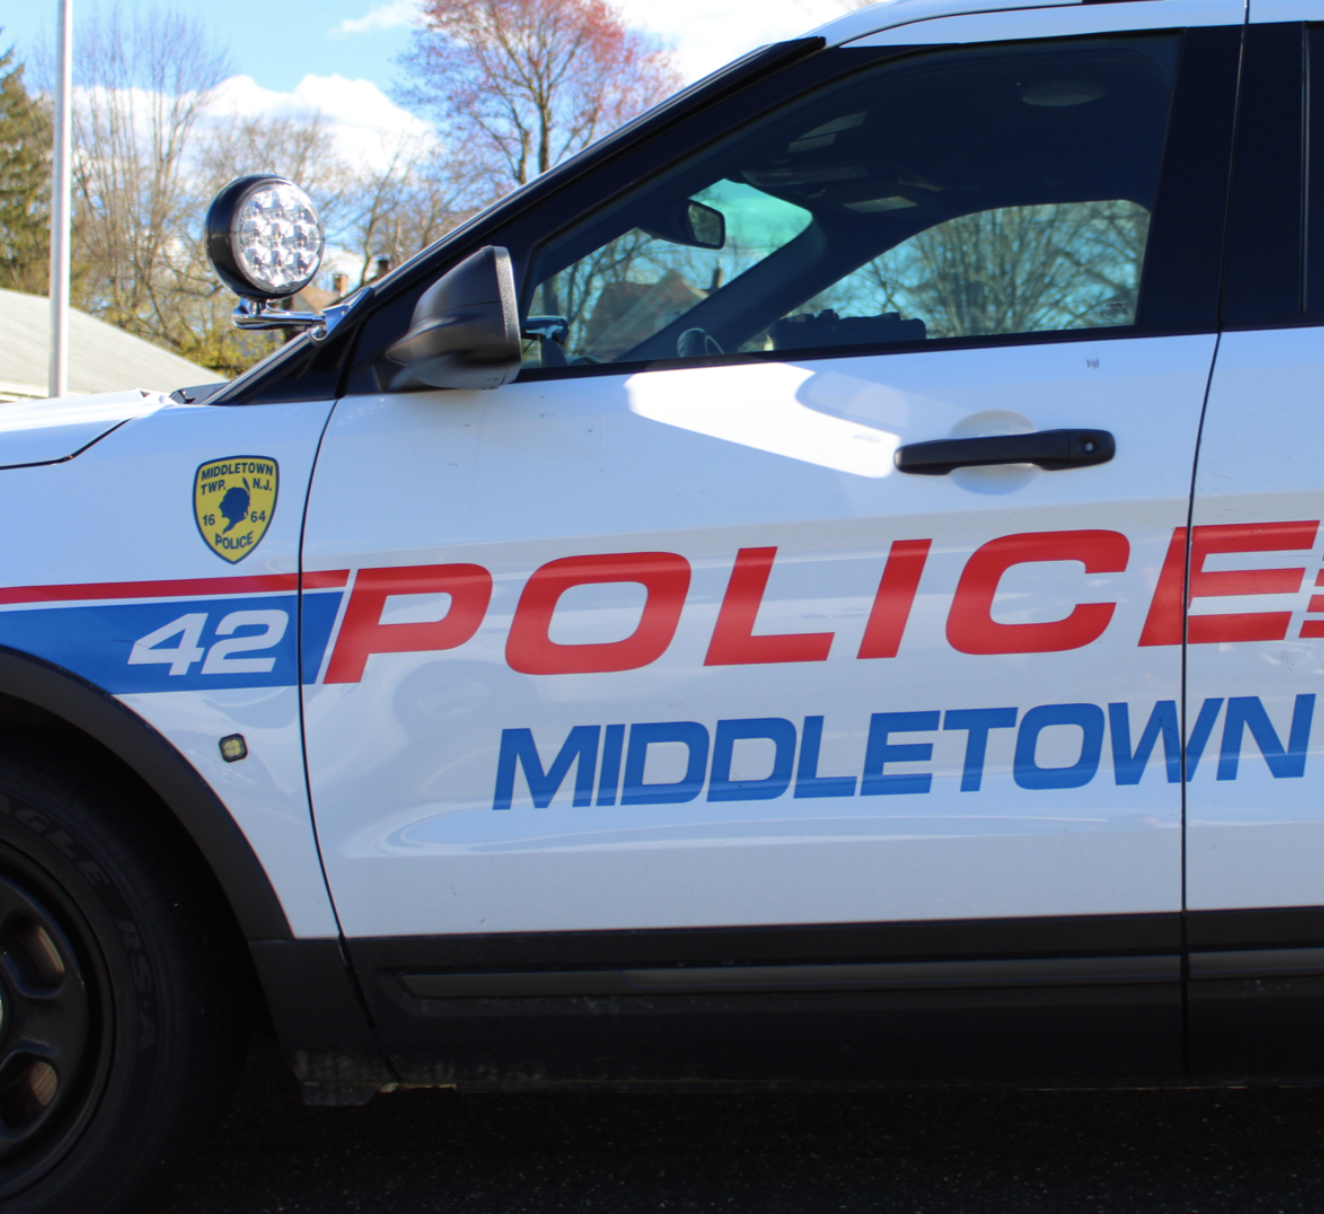 middletown township police department gary roth